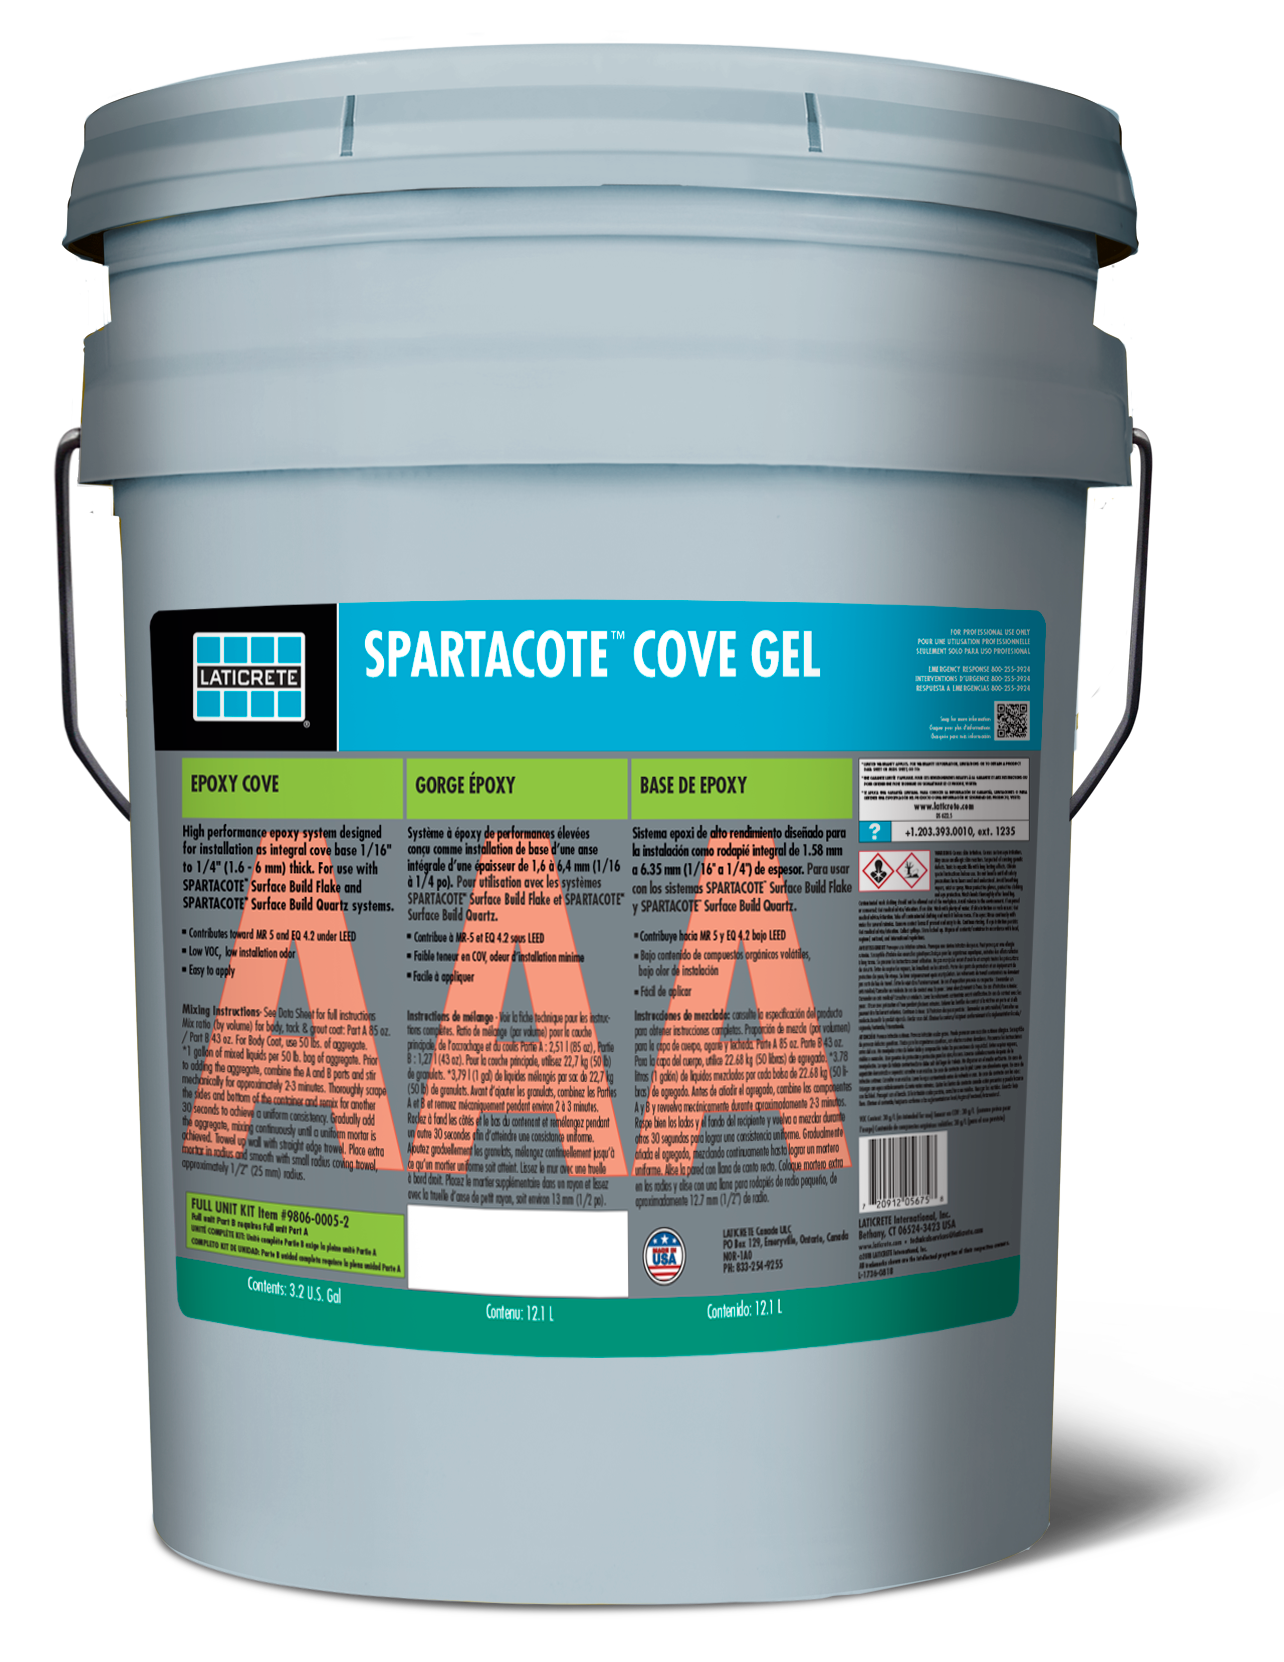 SPARTACOTE Cove Gel